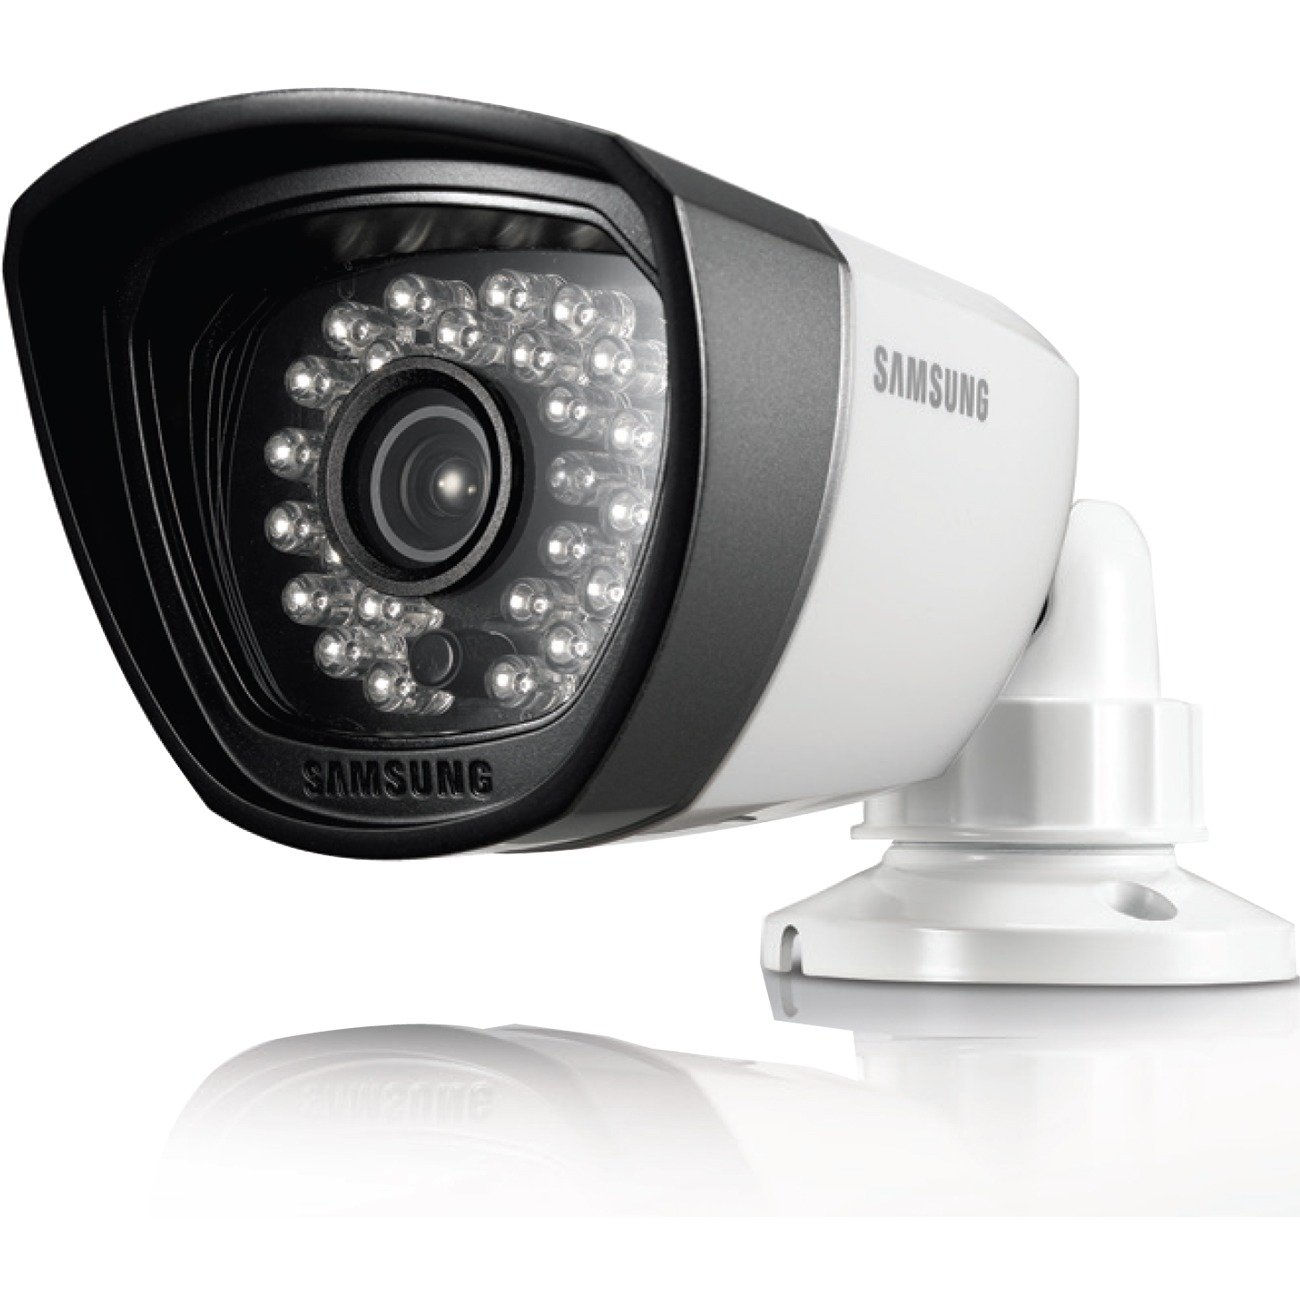 Amazon.com : Samsung SDC-7340BC Weatherproof Night Vision Camera with 60ft  Cable Included : Camera & Photo